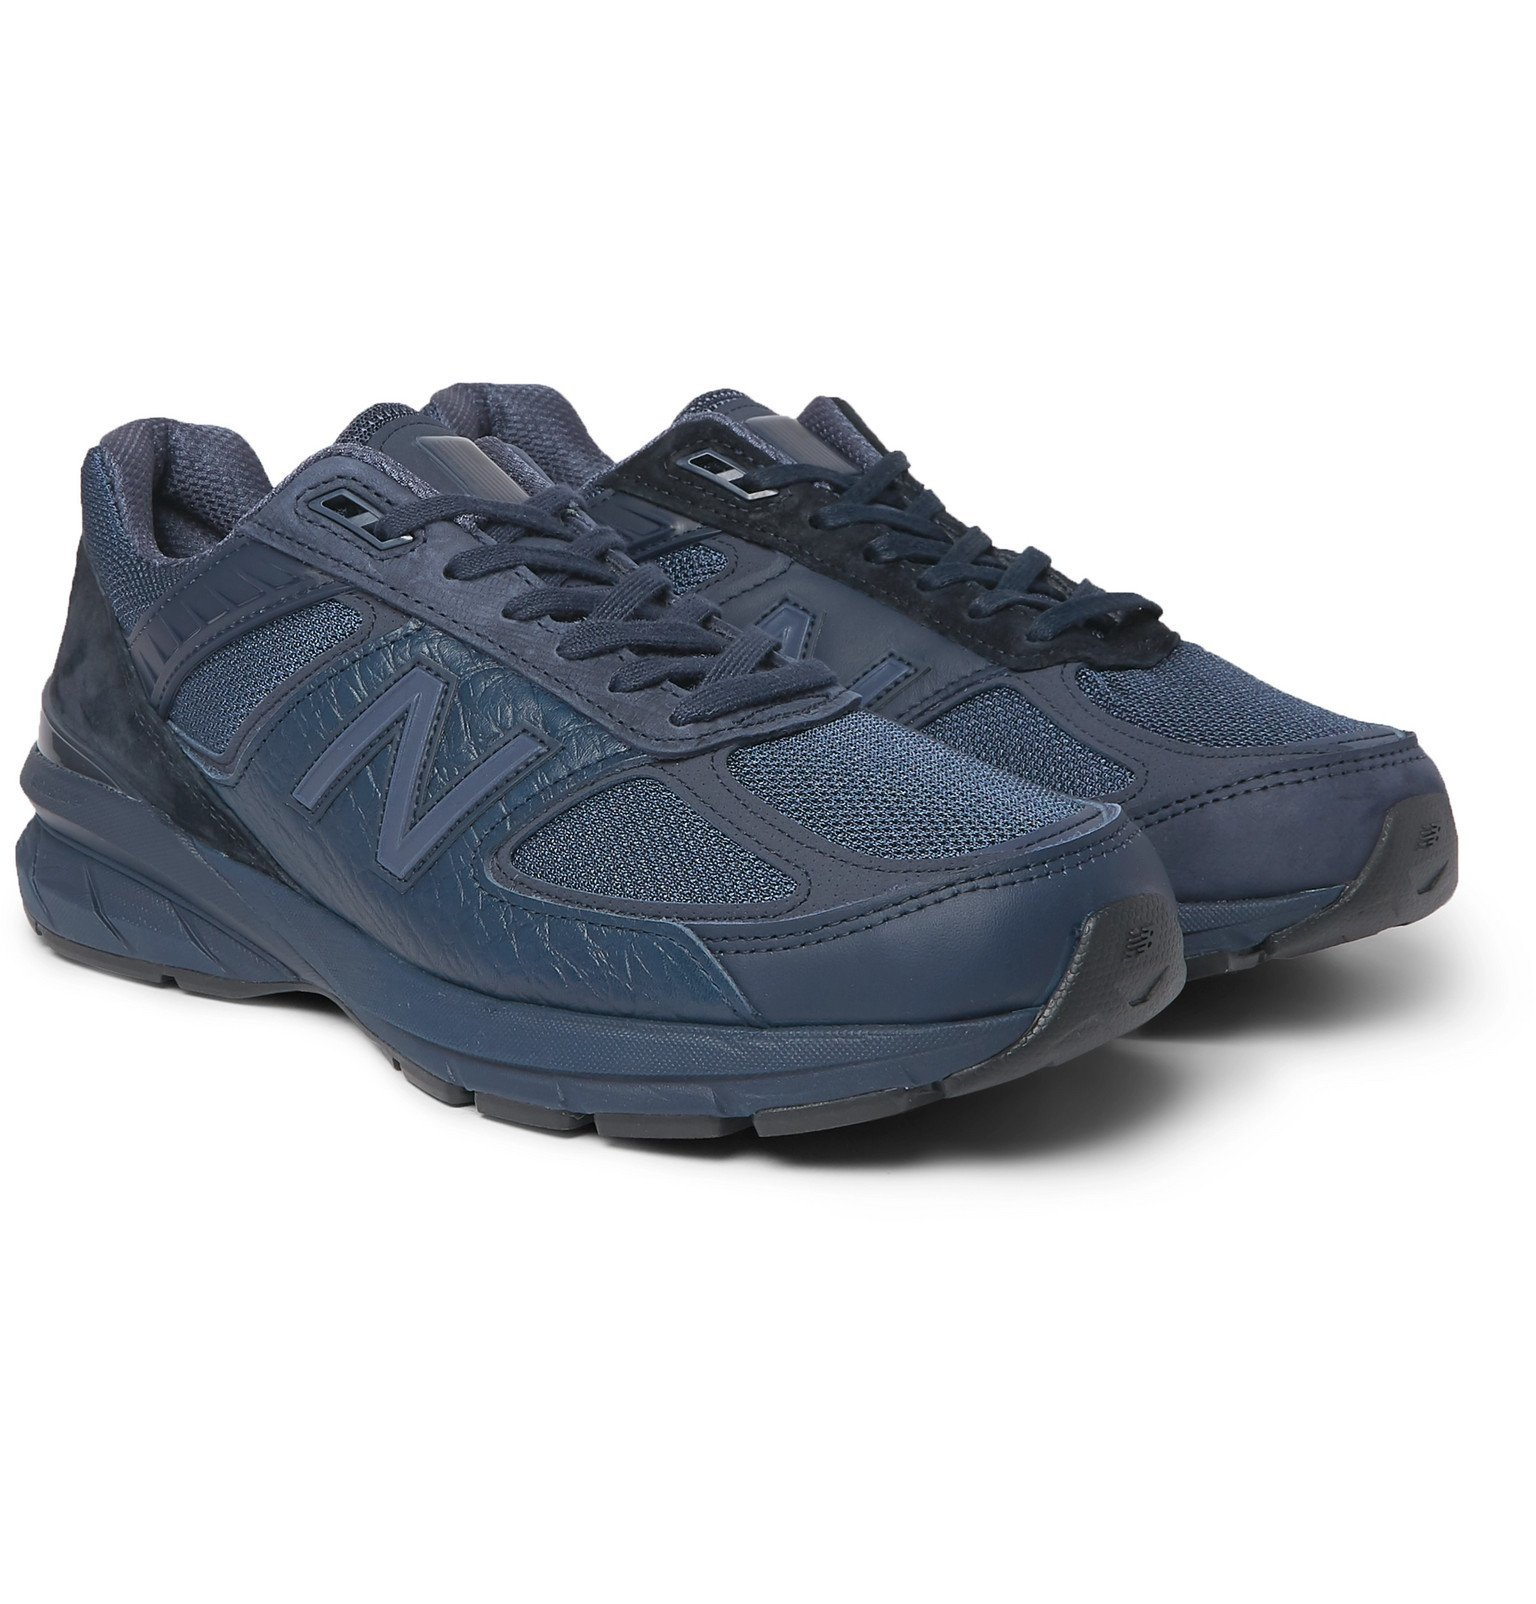 Photo: New Balance - Engineered Garments 990v5 Croc-Effect Leather, Suede, Nubuck and Mesh Sneakers - Blue